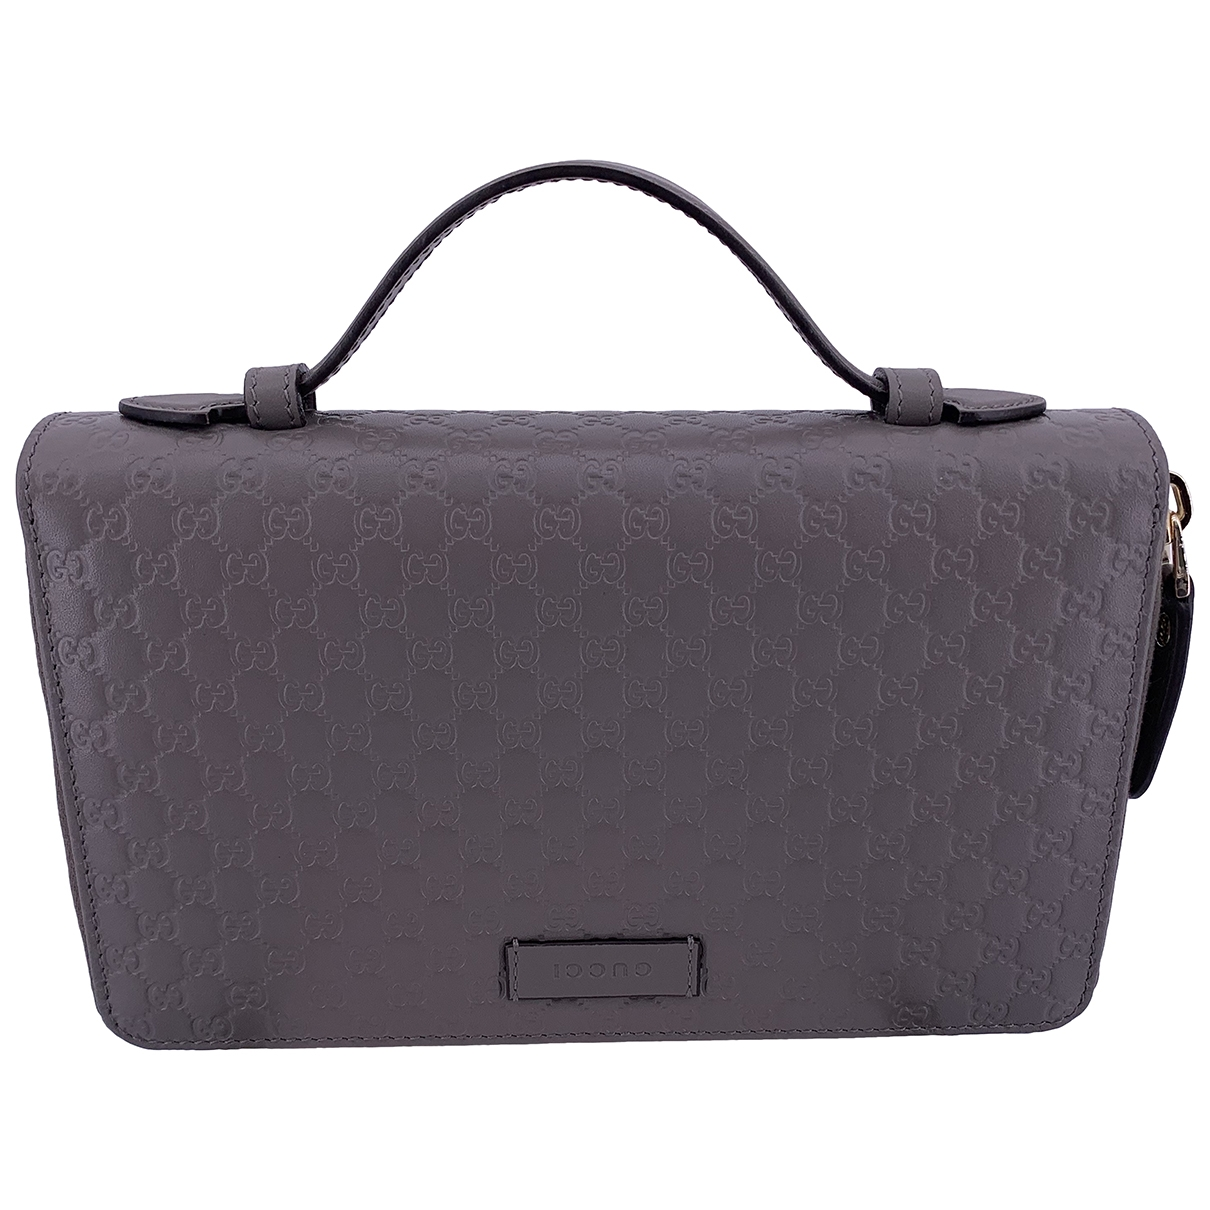 Gucci \N Grey Leather Clutch bag for Women \N